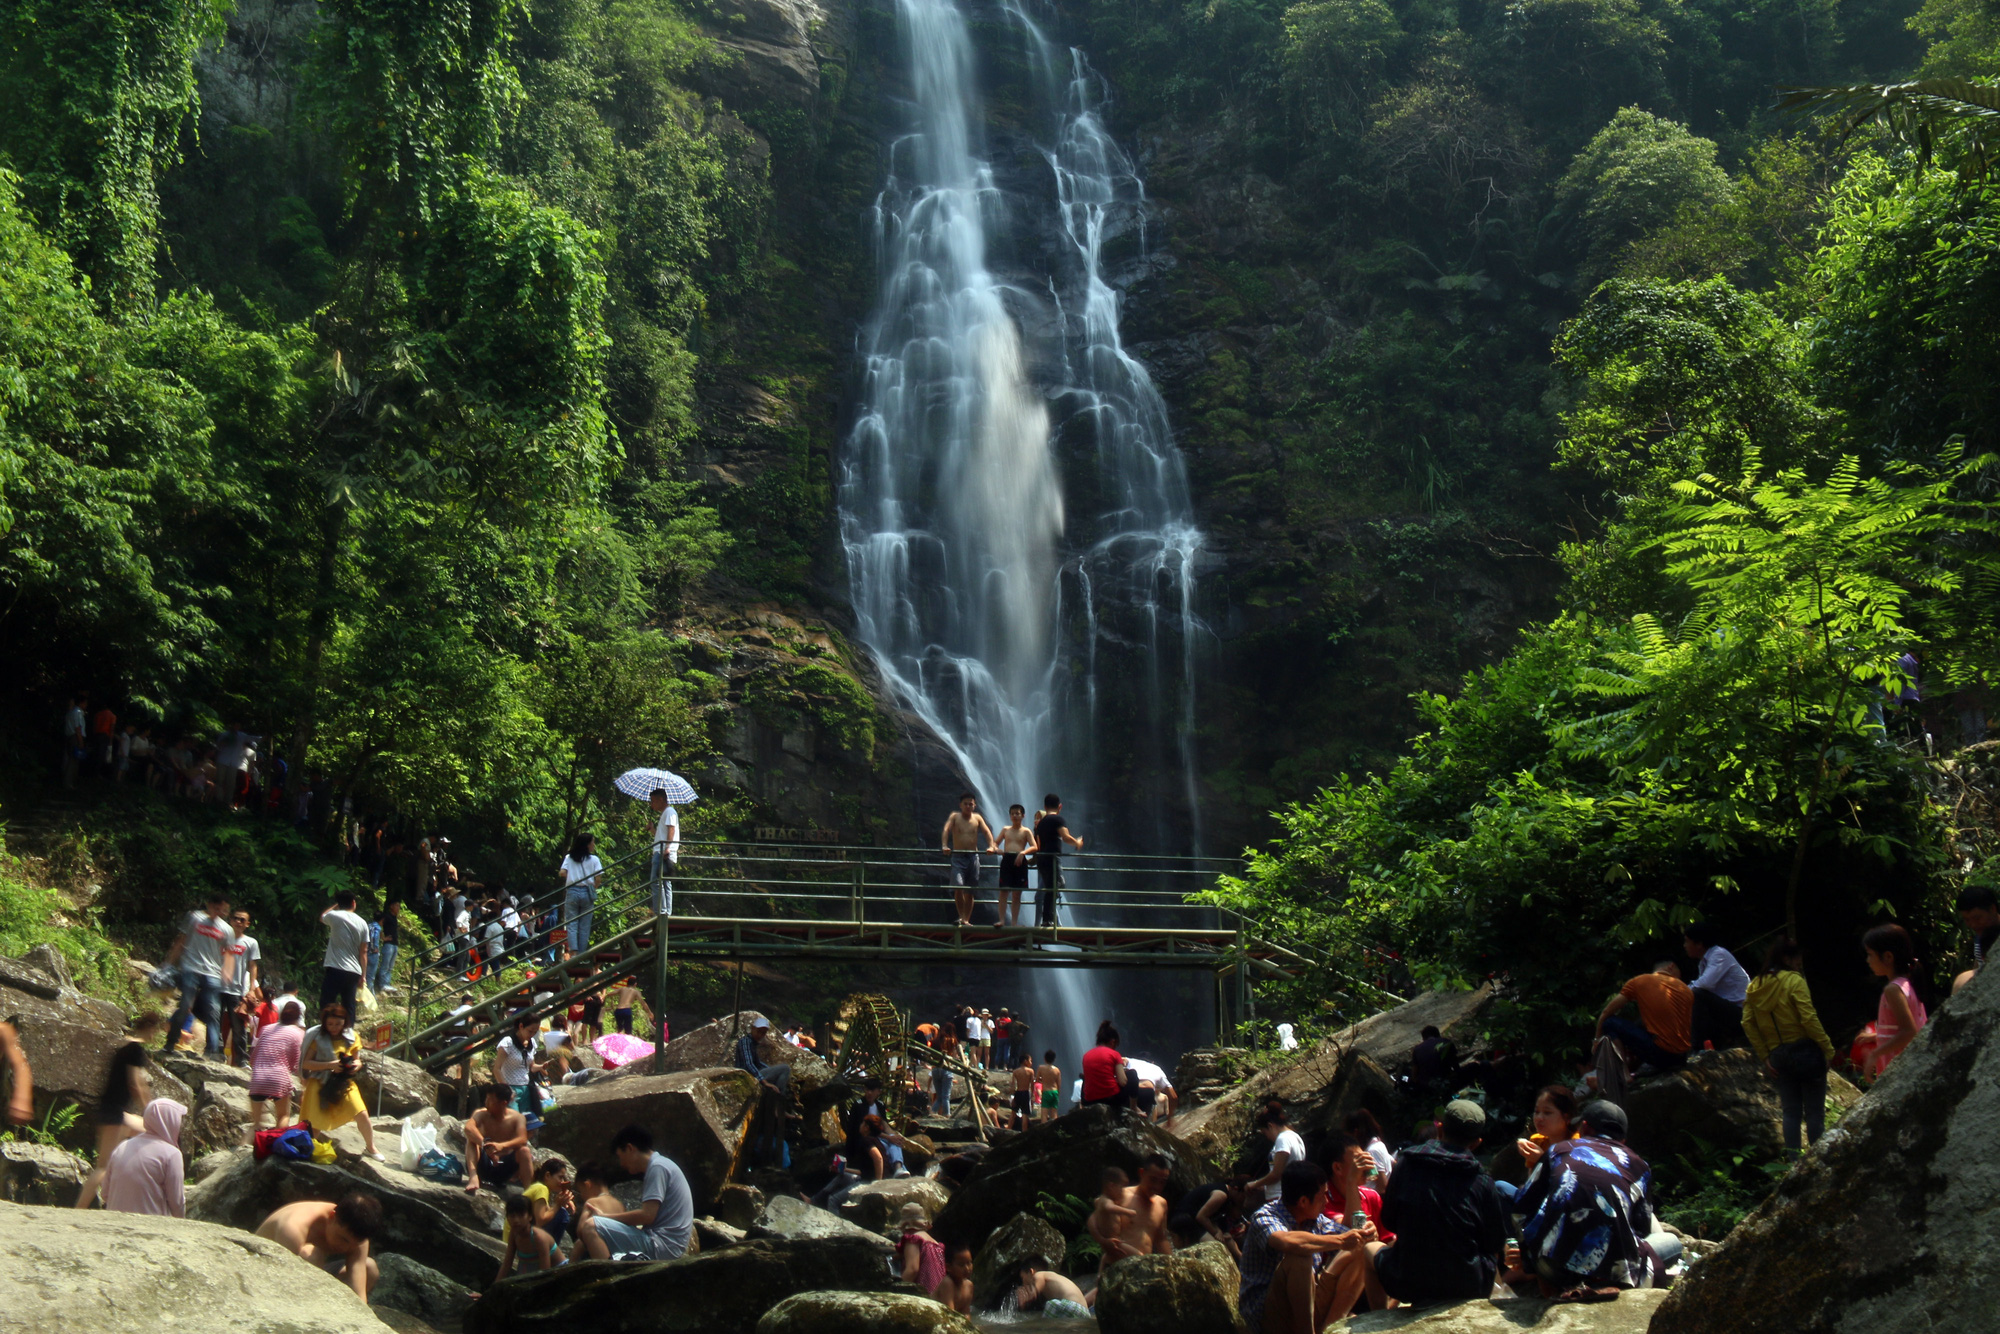 Visitors enjoy Kem Waterfall in Nghe An Province, Vietnam. Photo: Dao Tho